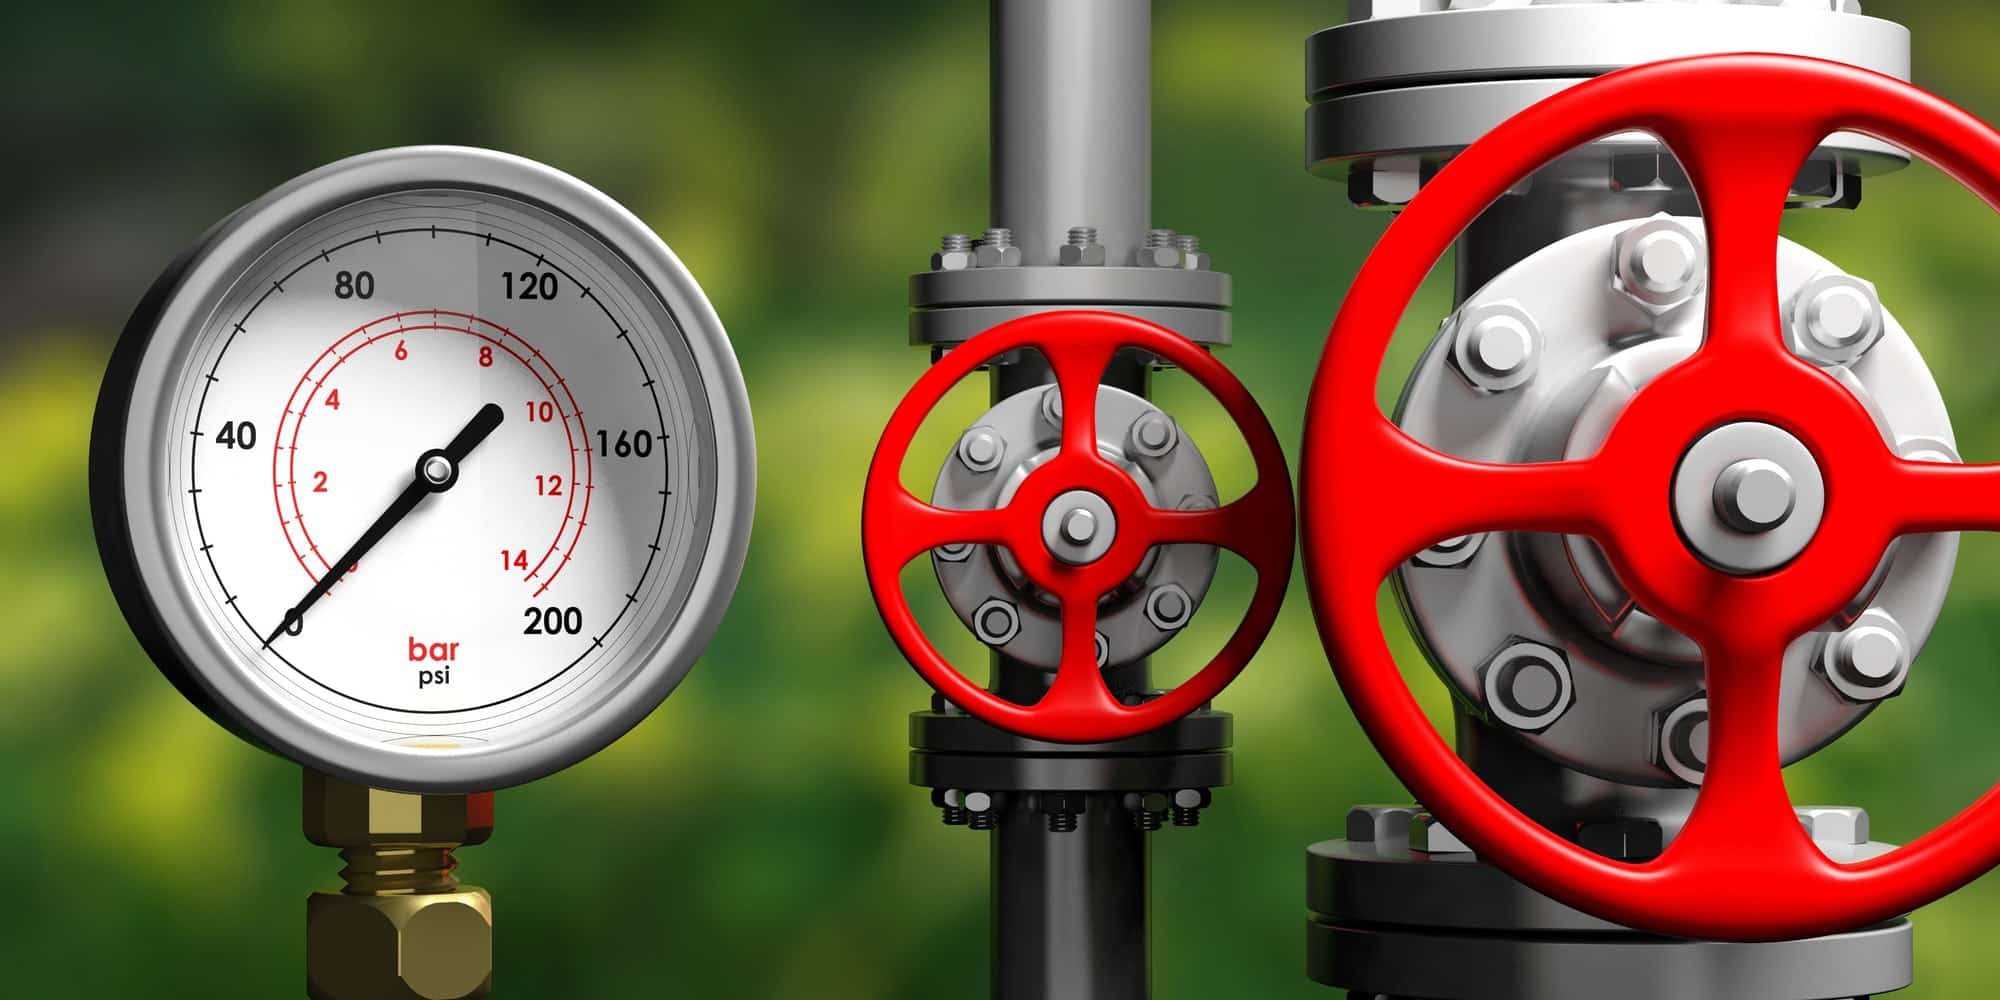 Industrial manometer, pipelines and valves on blur green background, 3d illustration